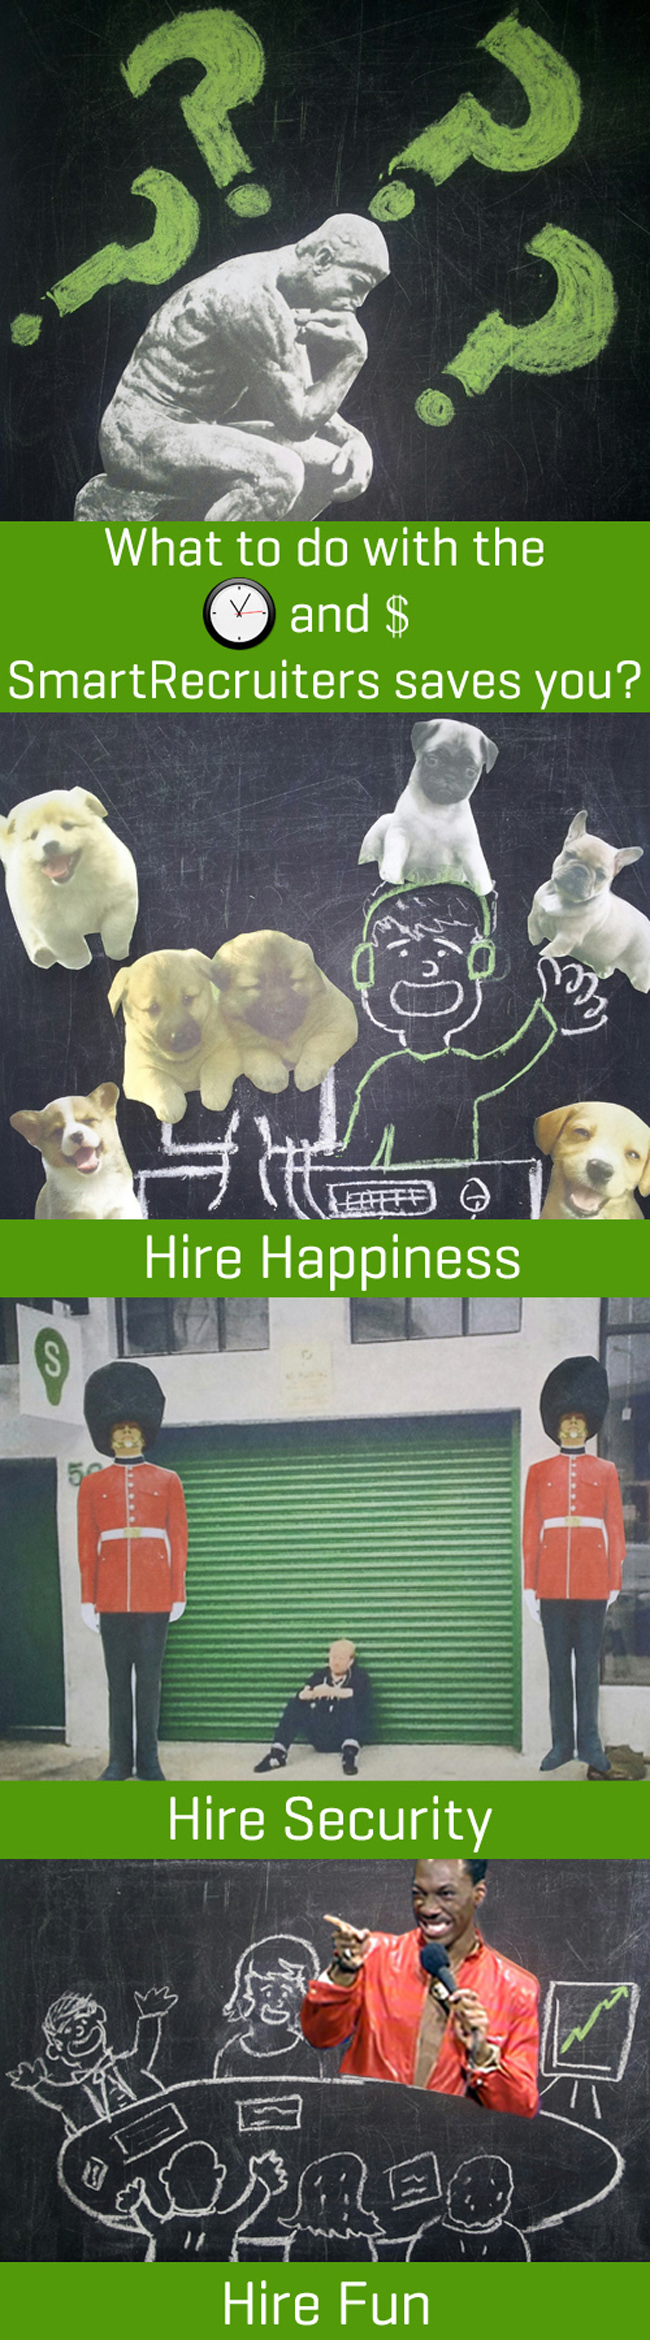 HireHappinessHireSecurityHireFun